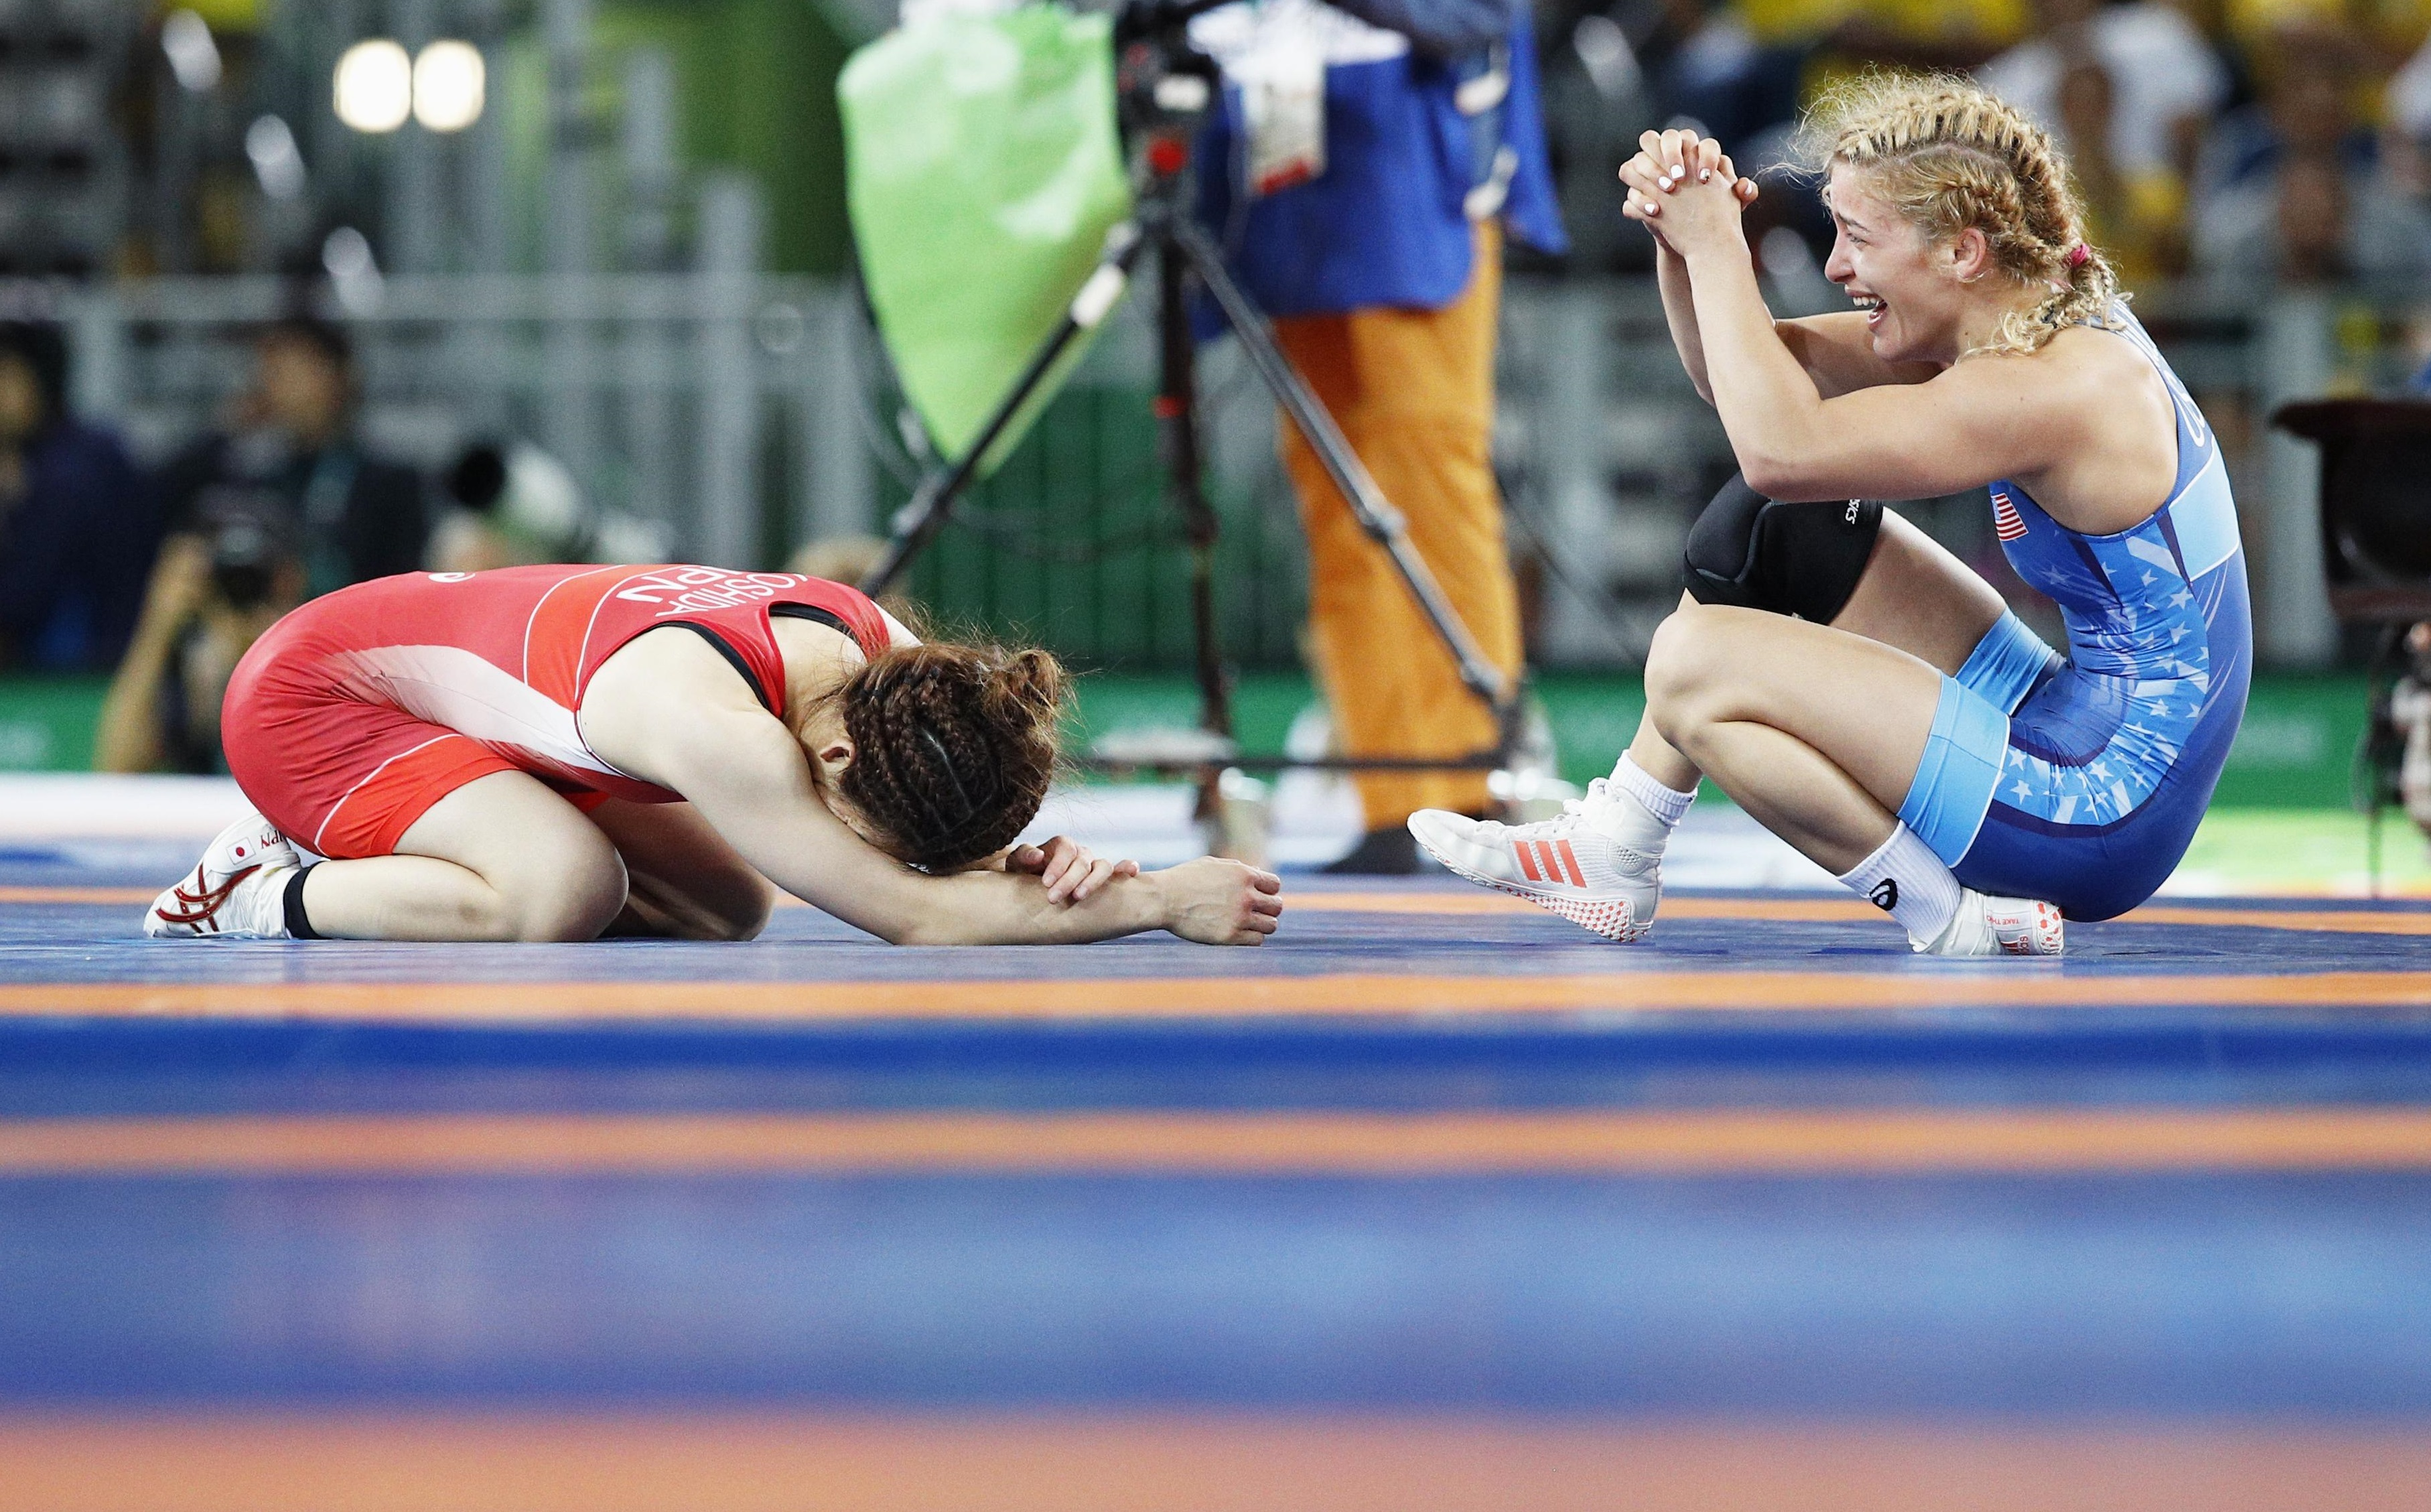 Japan's three-time reigning Olympic champion Saori Yoshida (left) reacts after she loses to Helen Maroulis of the United States in the 53-kg gold medal match of the women's freestyle wrestling at the Rio Olympics on Thursday. | KYODO